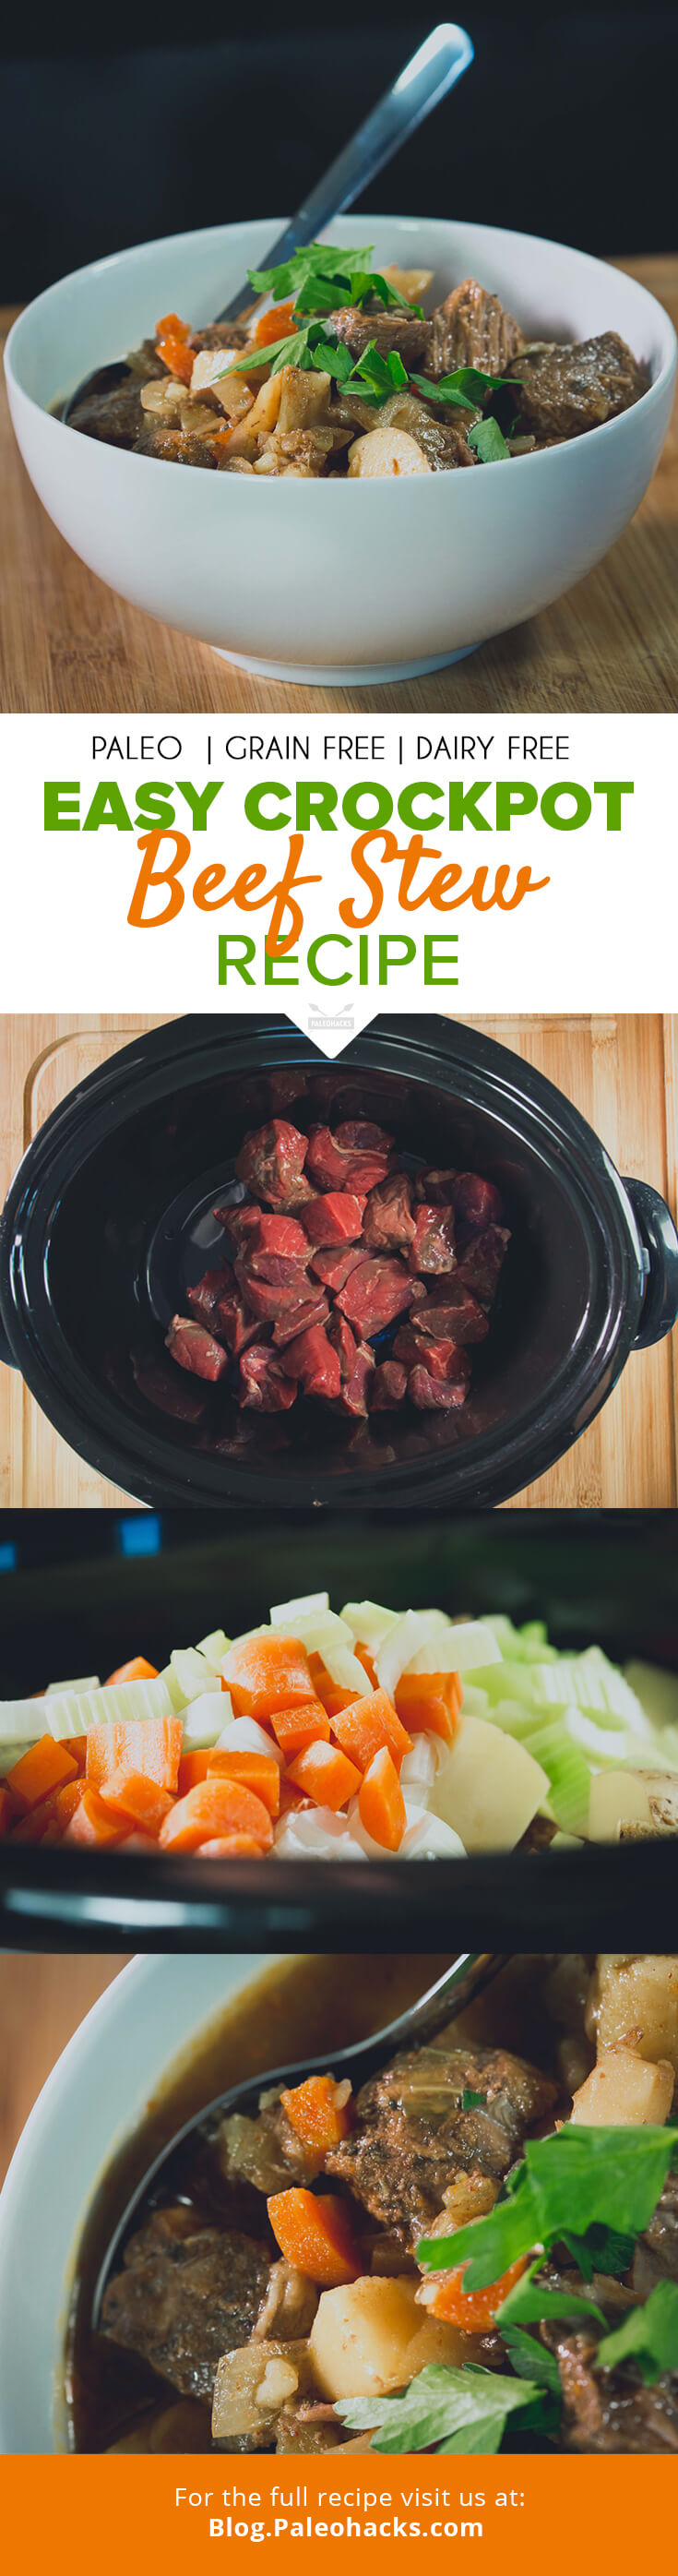 pin-easy-crockpot-beef-stew-recipe